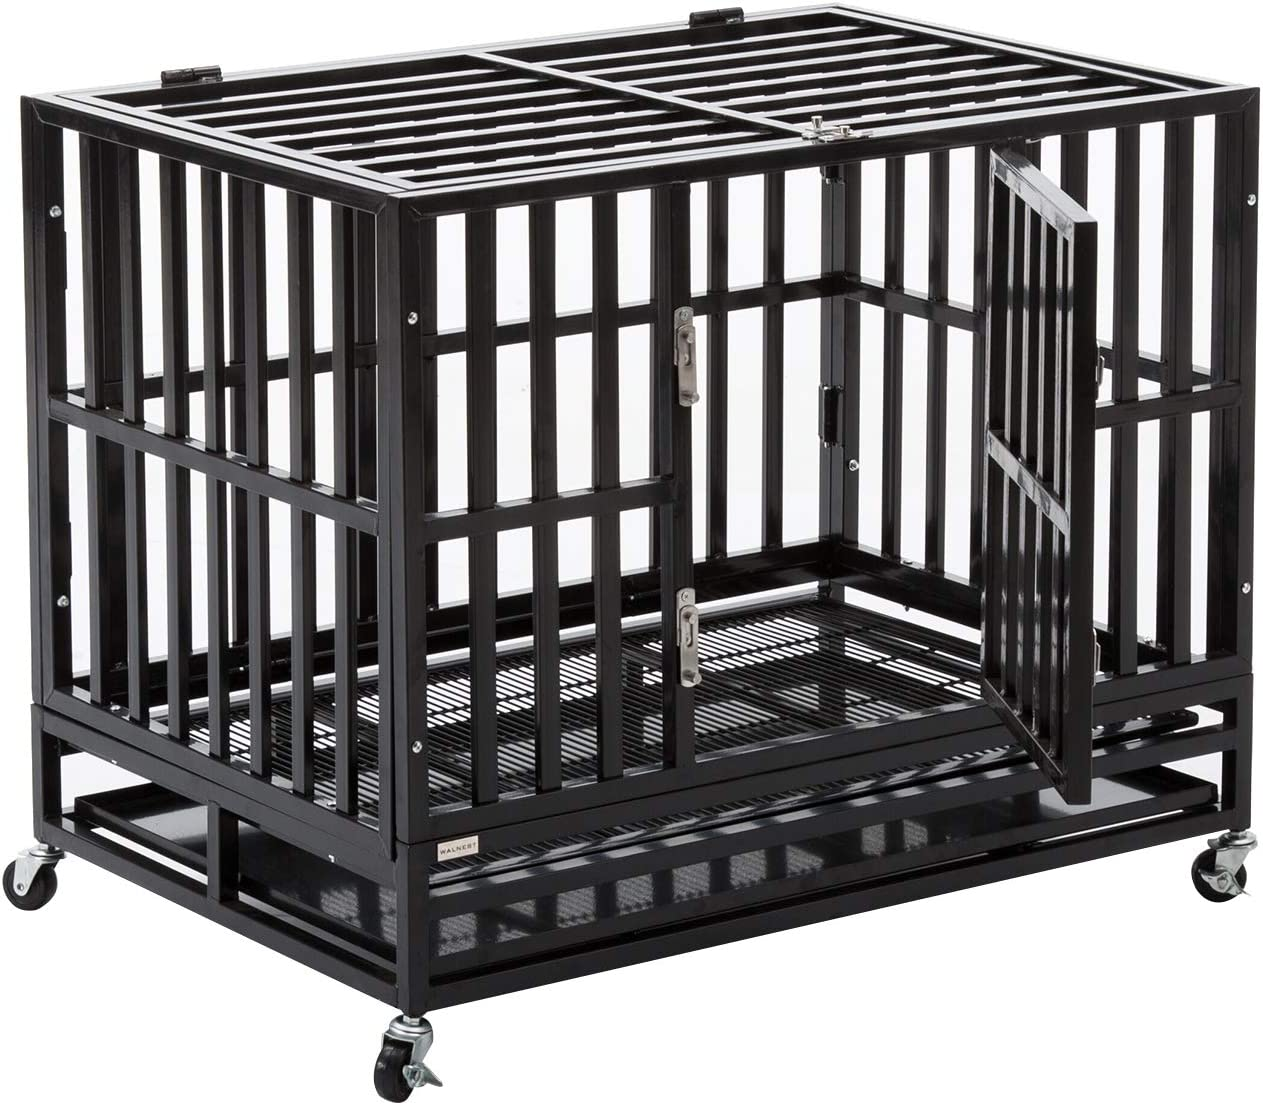 Walcut Heavy Duty Square Tube Large Dog Cage Crate Kennel Pet Playpen with Wheels and Tray